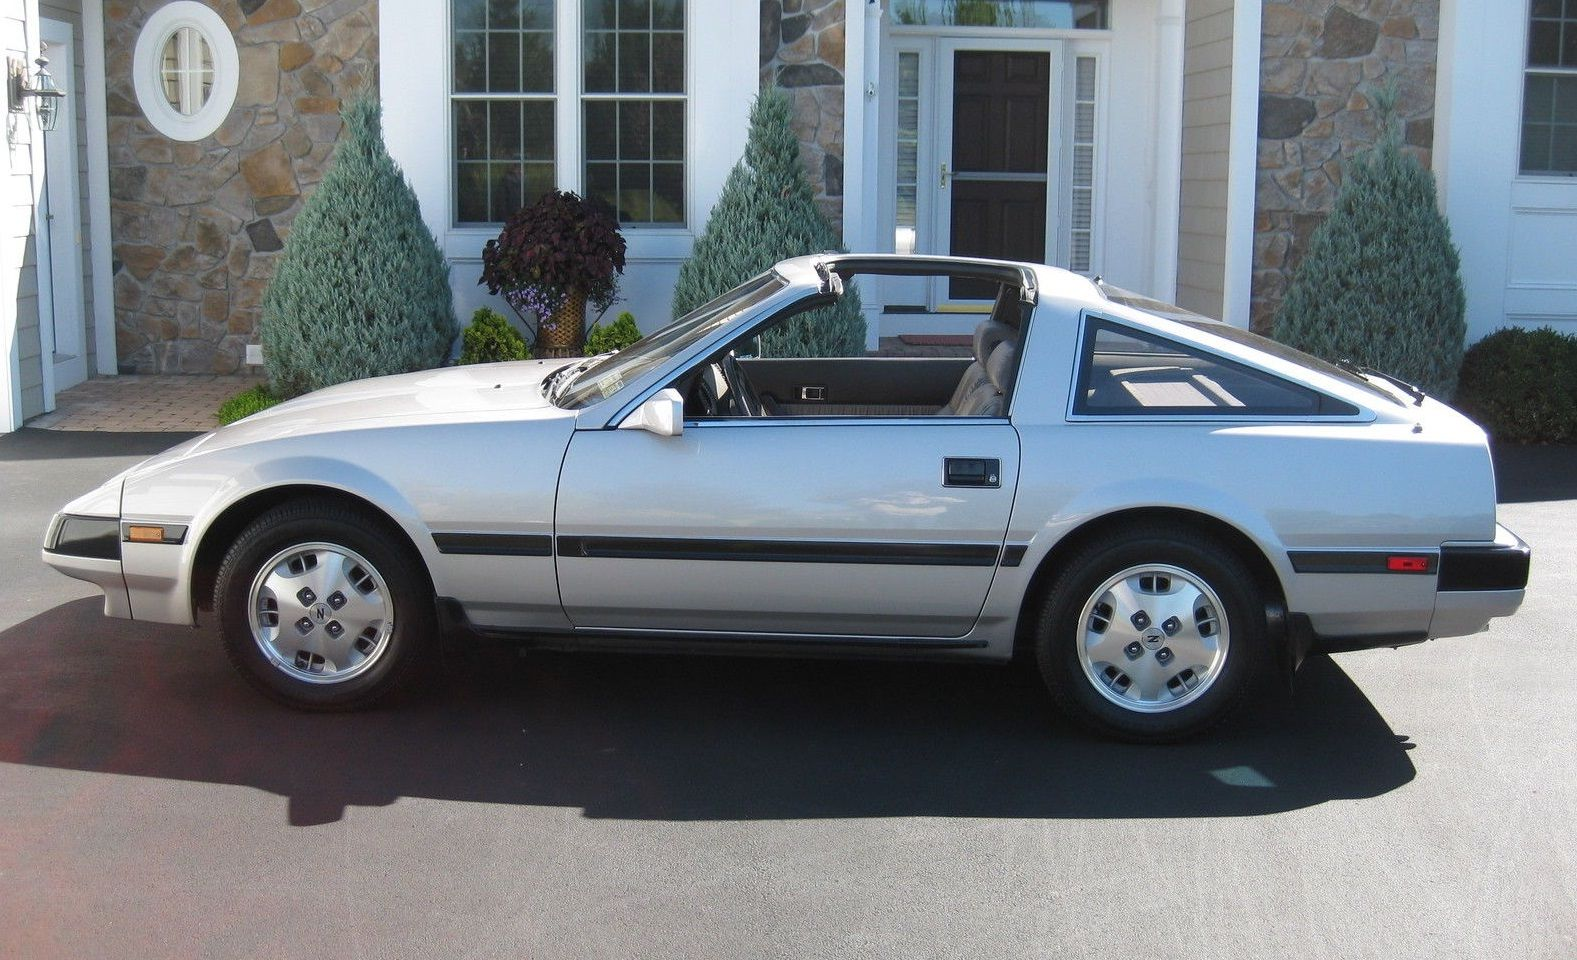 1985 nissan 300zx 300 zx collector quality classic nissan 300zx 1985 for sale. Black Bedroom Furniture Sets. Home Design Ideas